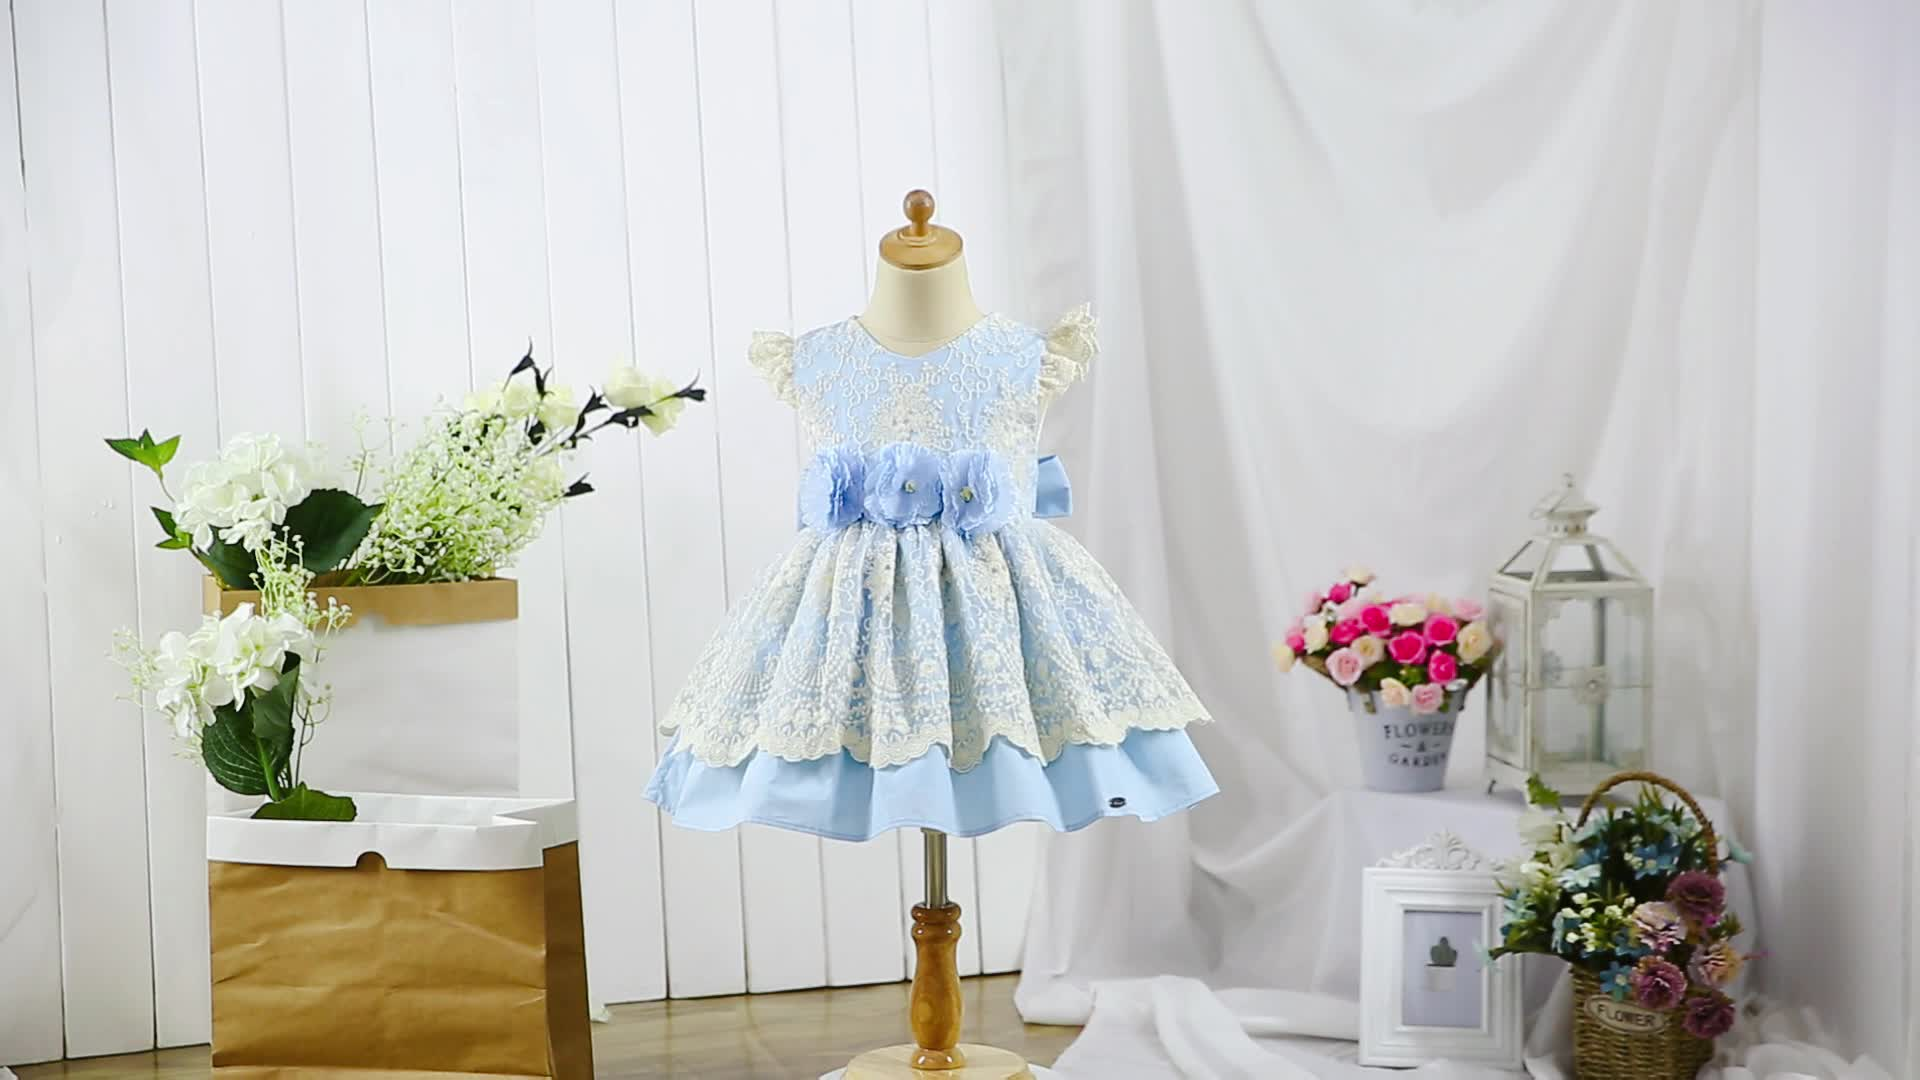 Pettigirl Sky Blue Flower Girl Dresses Girls kids Party Dresses Age 2 To 8 Y Lace Dresses With Headpiece